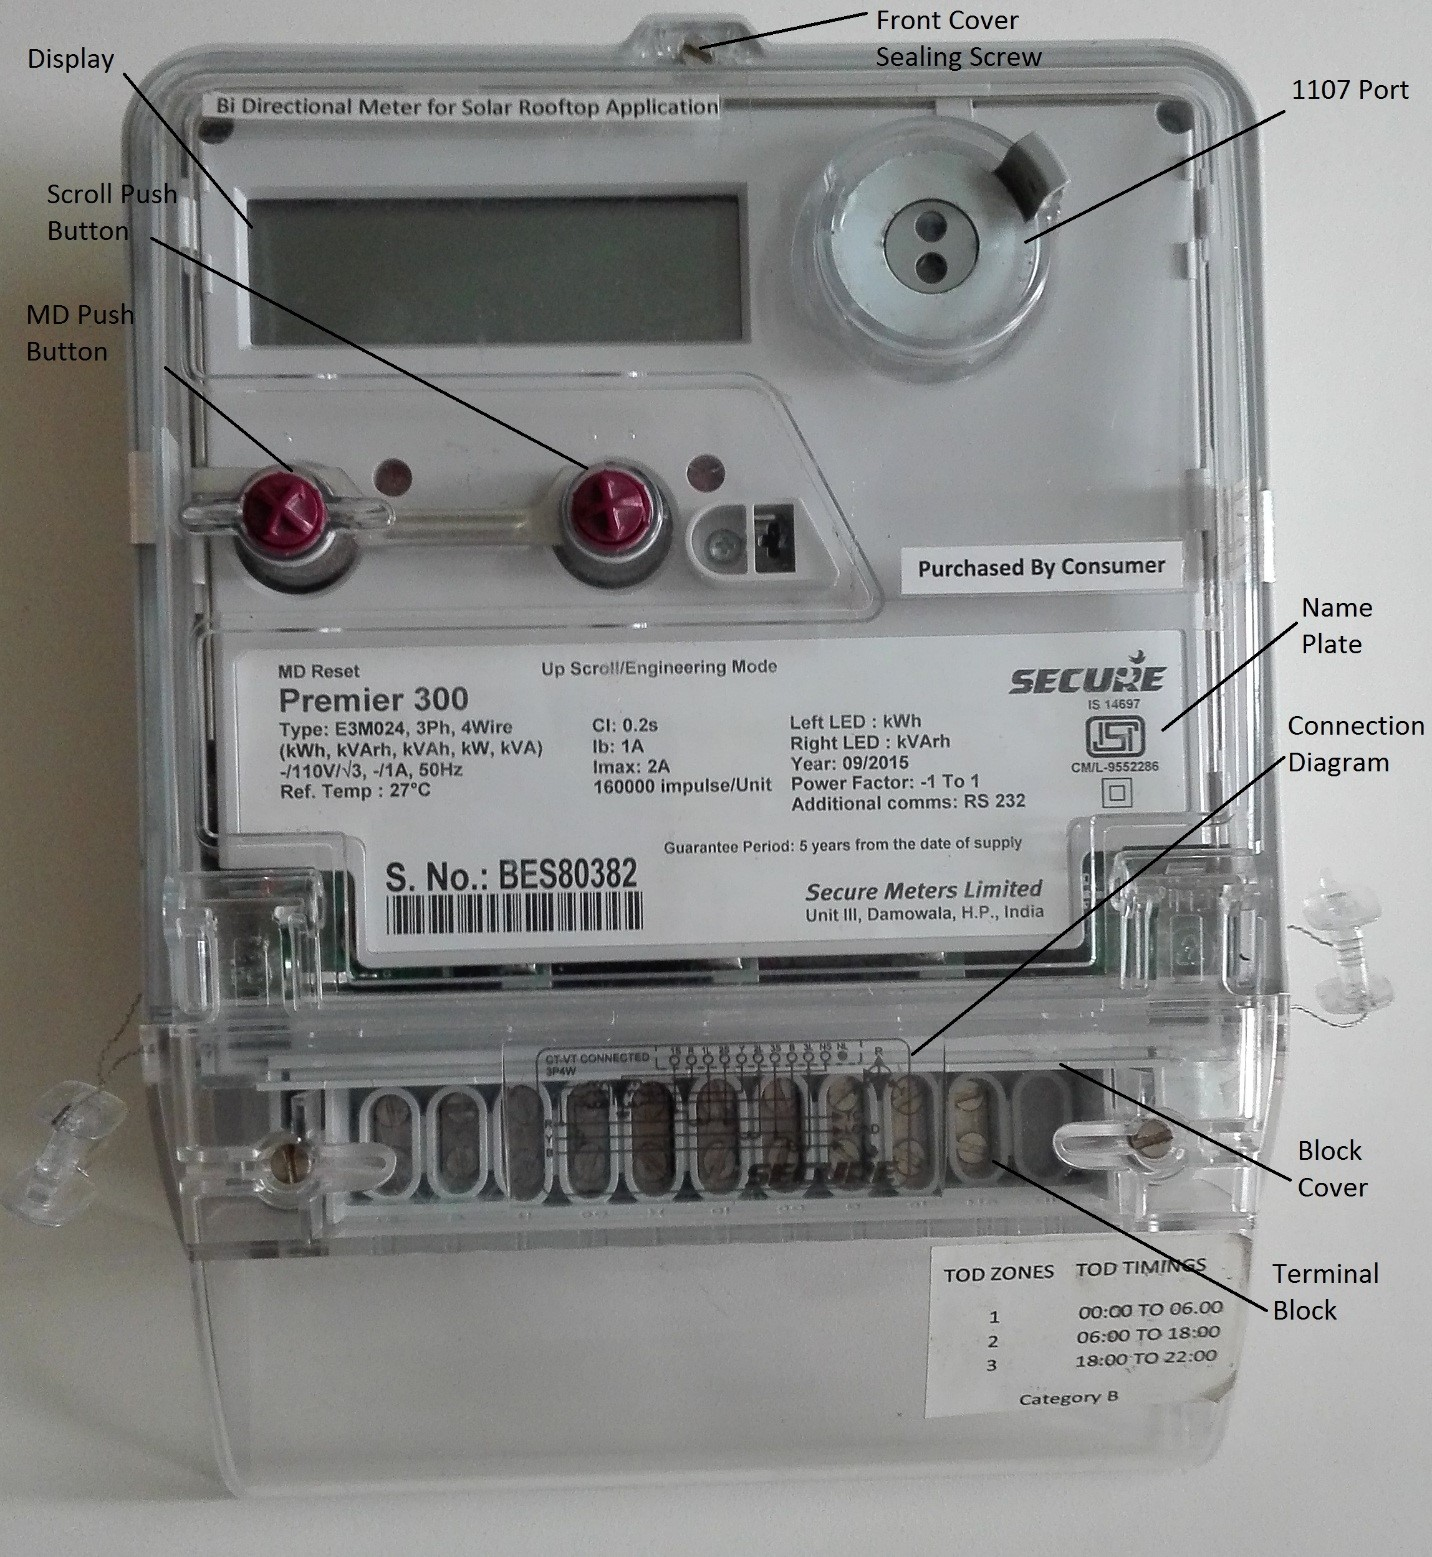 How To Read A Bidirectional Meter Ecosoch Solar Breaker Panel Wiring Diagram As Well 3 Phase Electric Motor 01 Shows Front View Of Single Bi Directional Following Are The Parts Name Plate Electrical